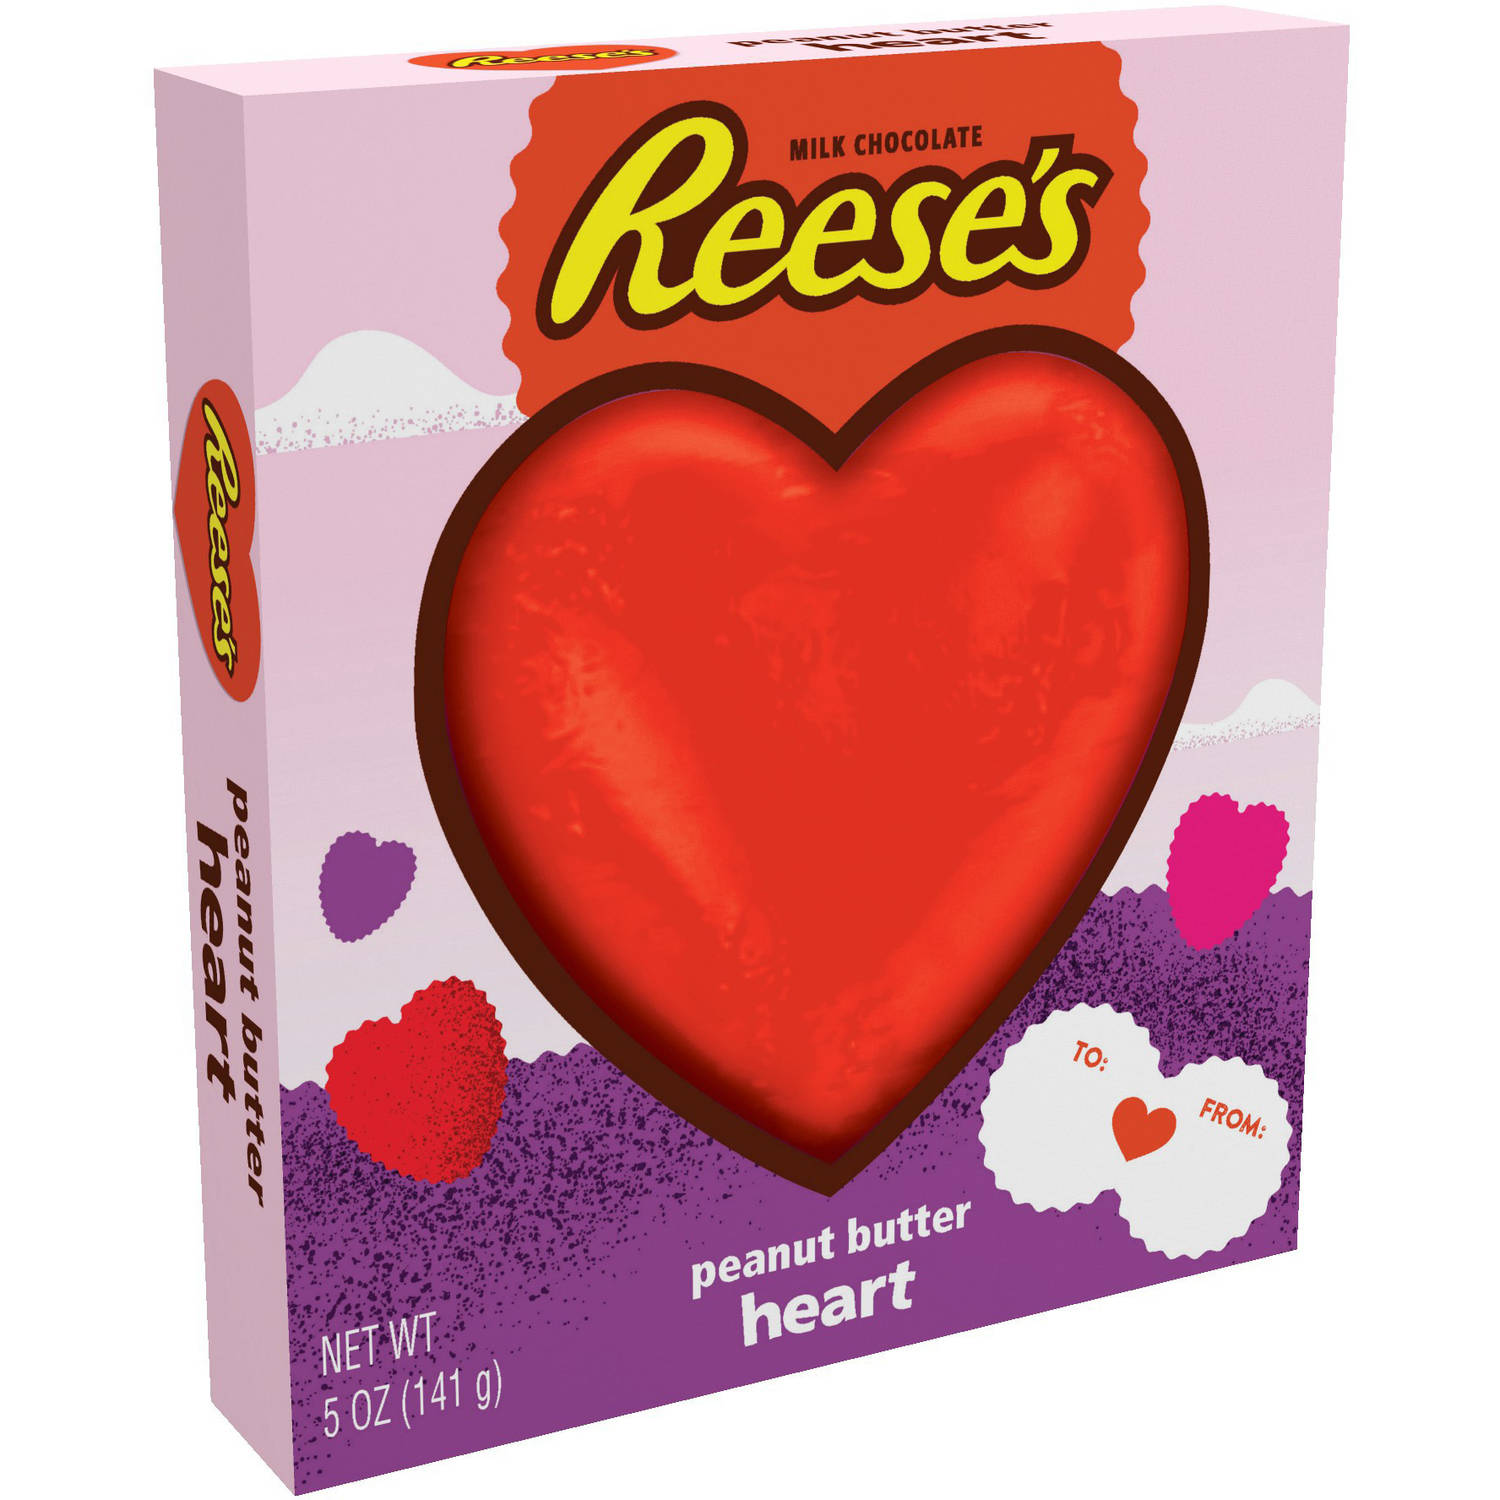 Reese's Valentine's Peanut Butter Heart Candy, 5 oz